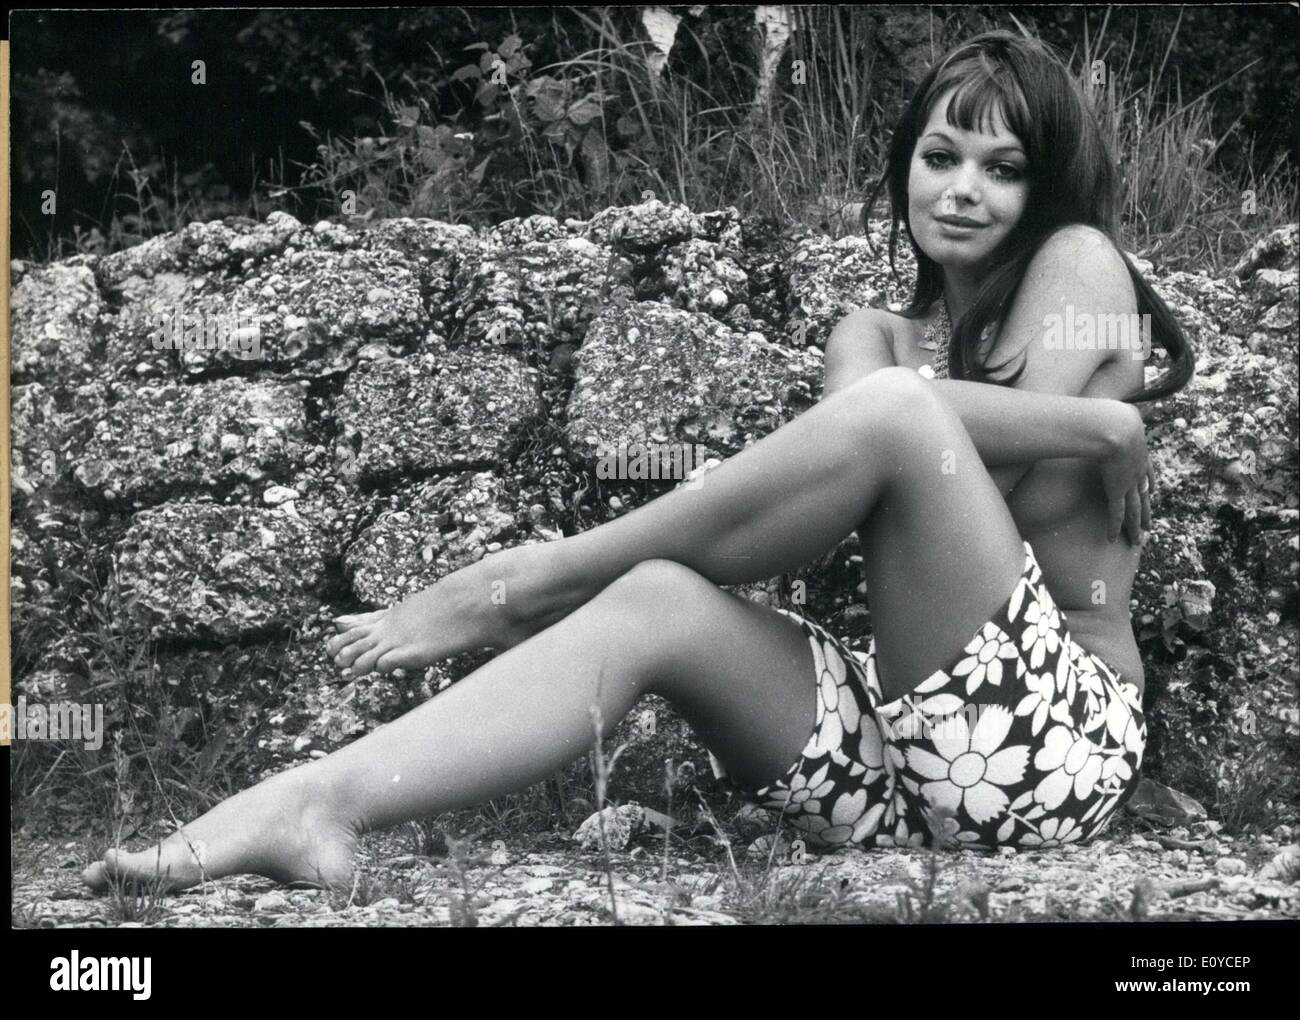 Andrea Sexy Picture aug. 12, 1969 - pictured is sexy german actress andrea rau